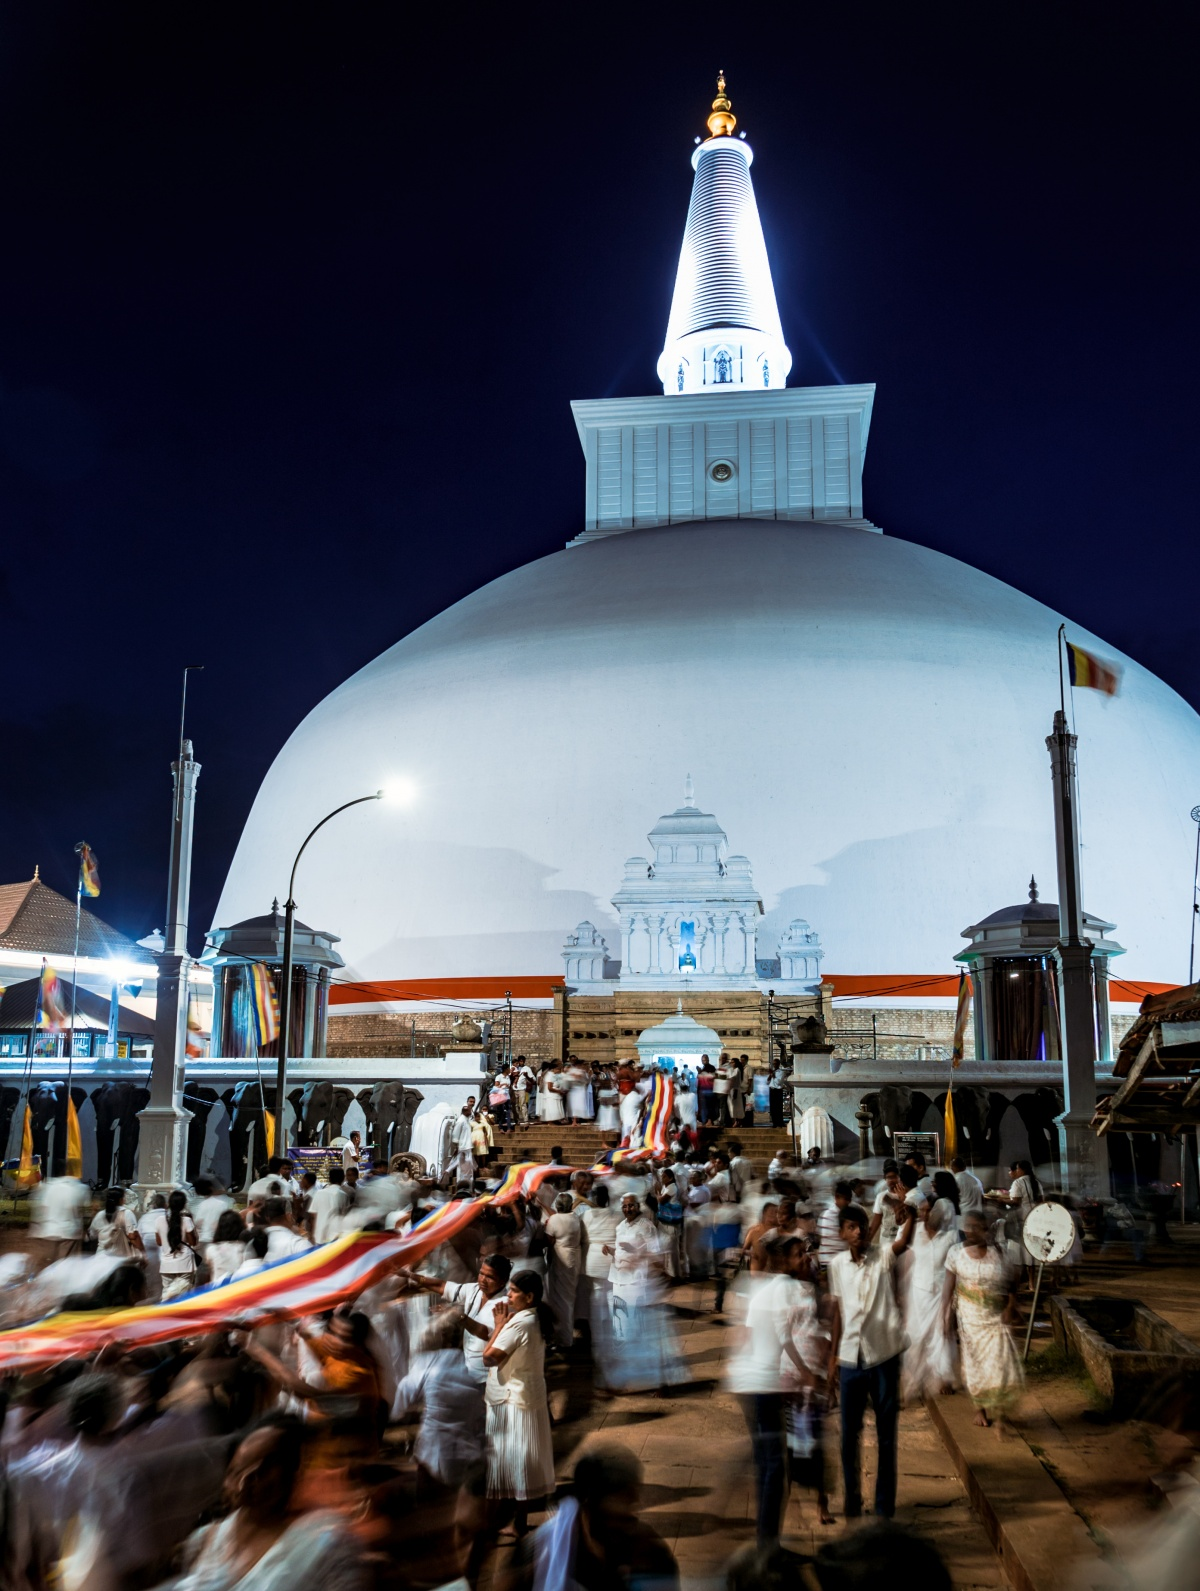 Photo of white stupa in nighttime with people celebrating fullmoon ceremonies carrying hundreds of meters long linen towards the temple to honour Buddha.